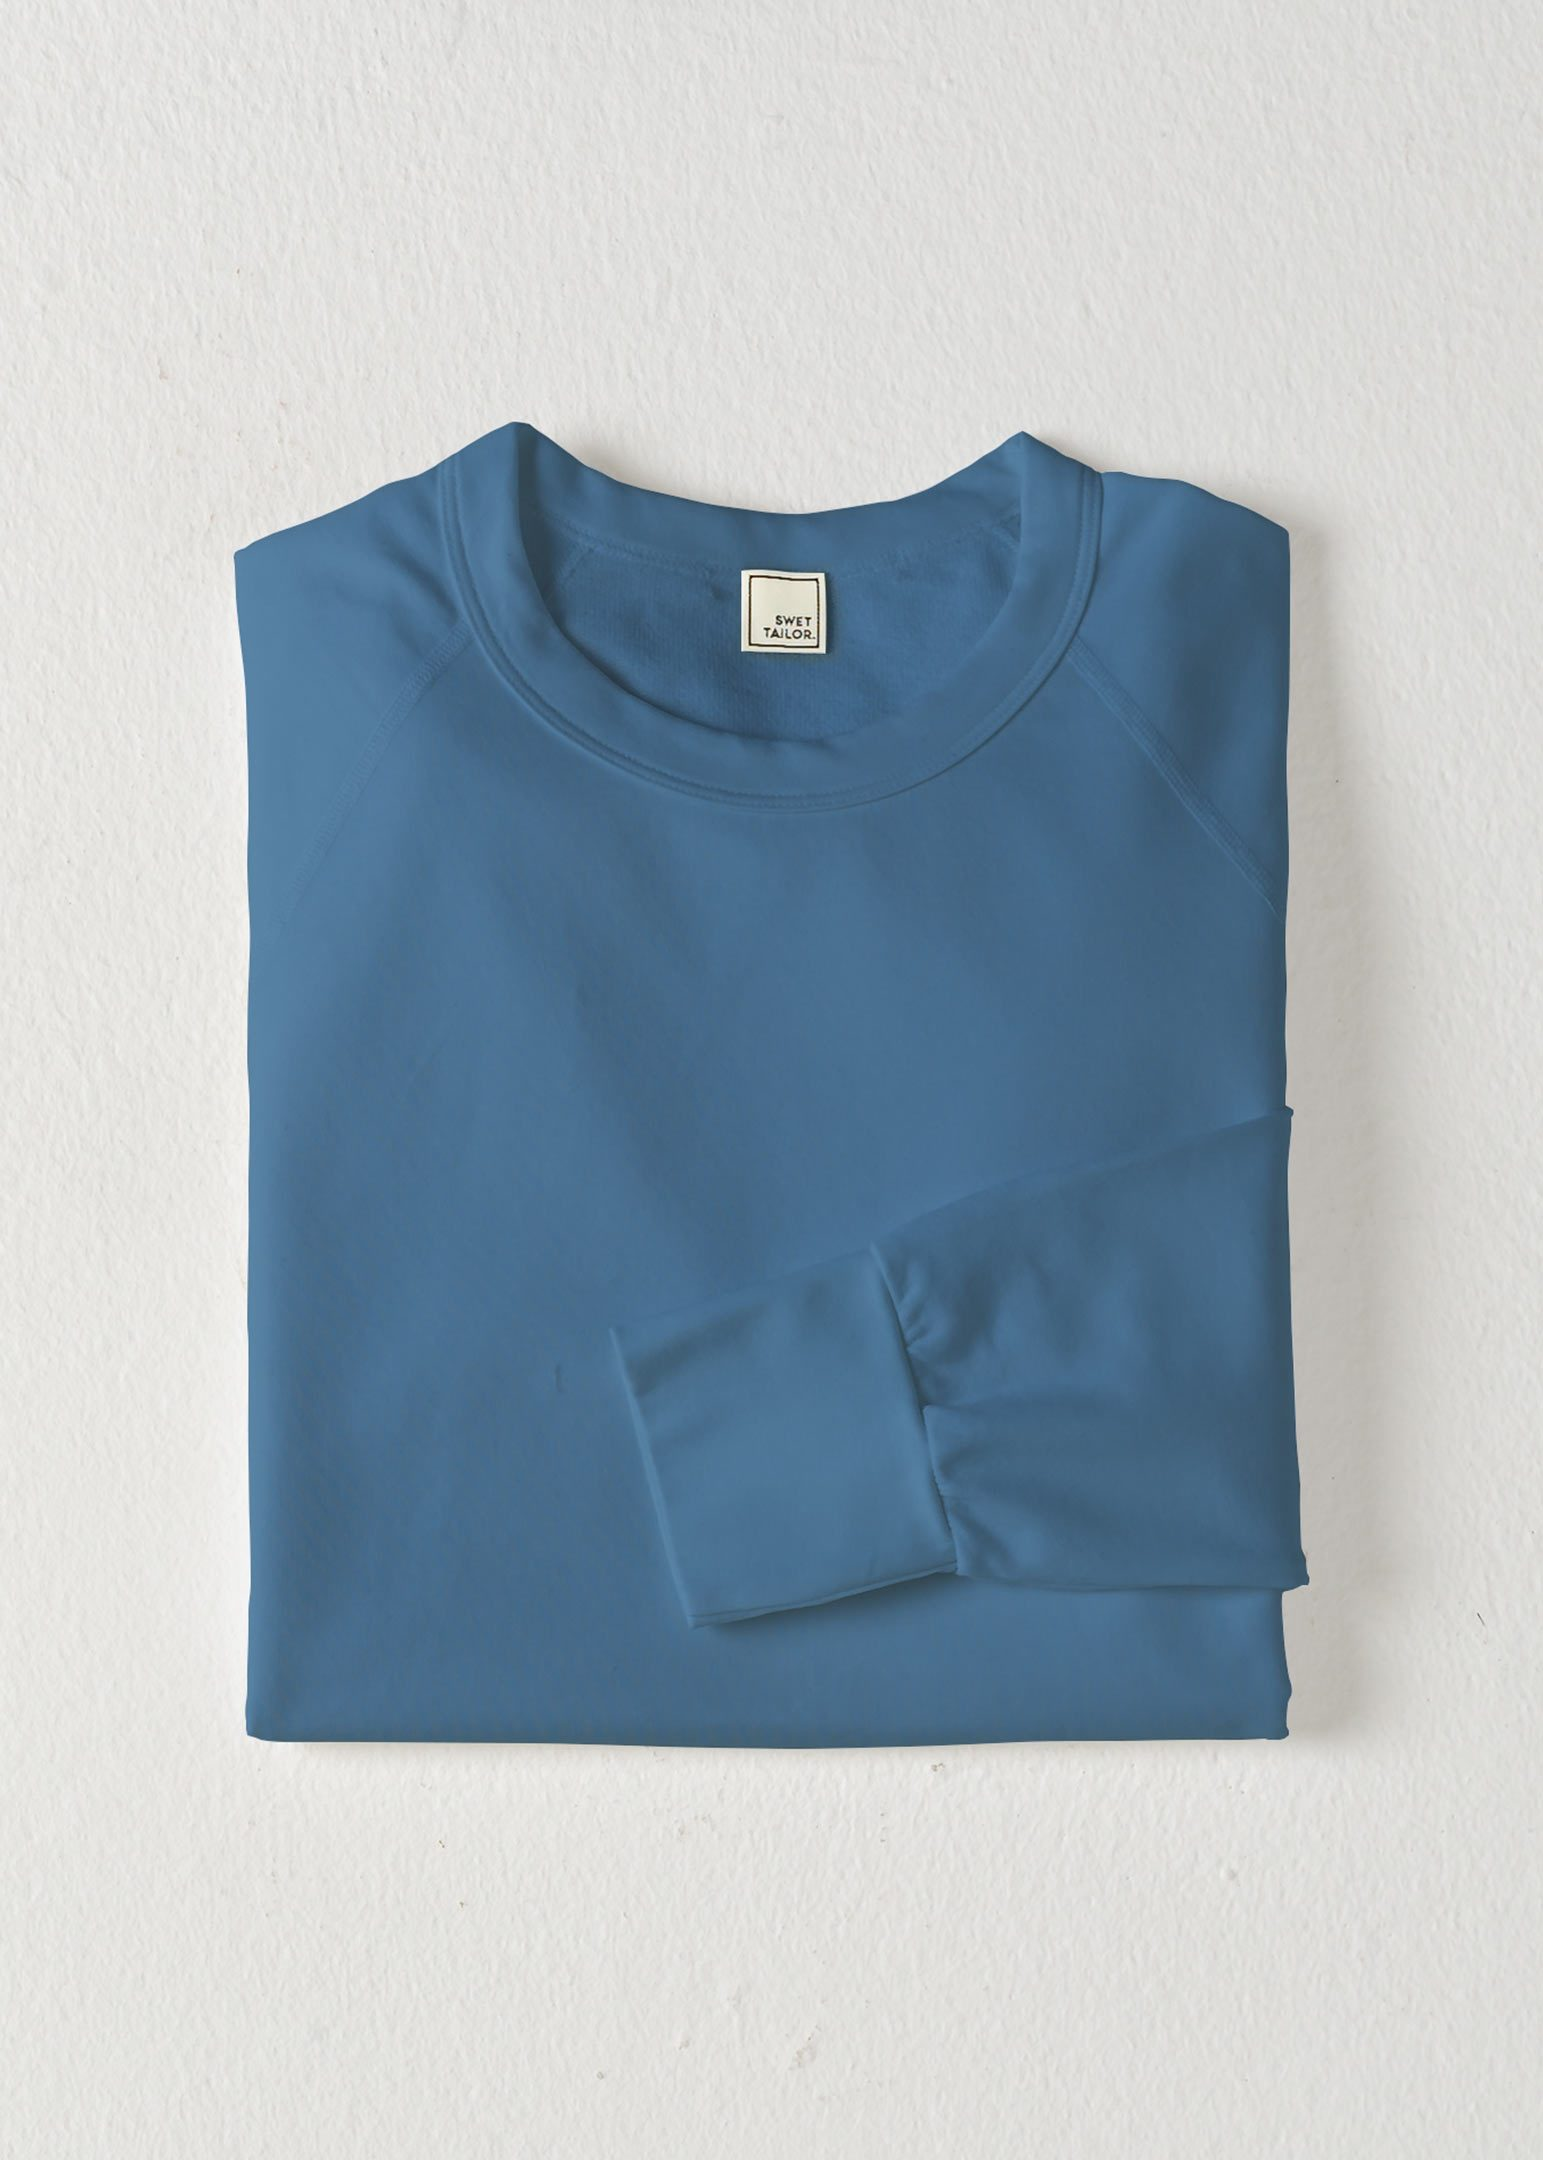 SWET-Shirt | Indigo Blue